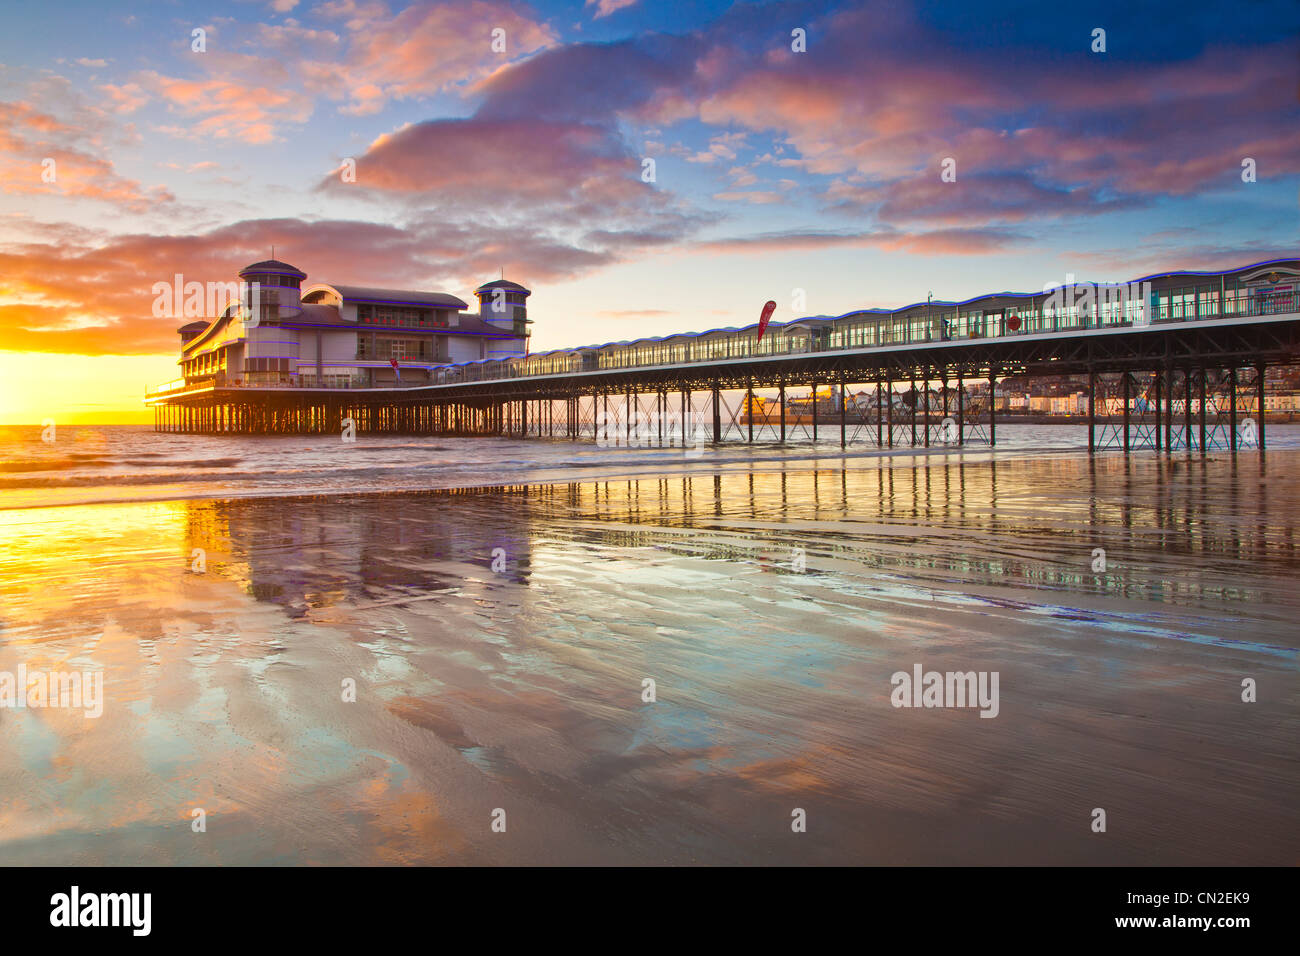 Sunset over the Grand Pier at Weston-Super-Mare, Somerset, England, UK reflected in the wet sand of the beach at - Stock Image